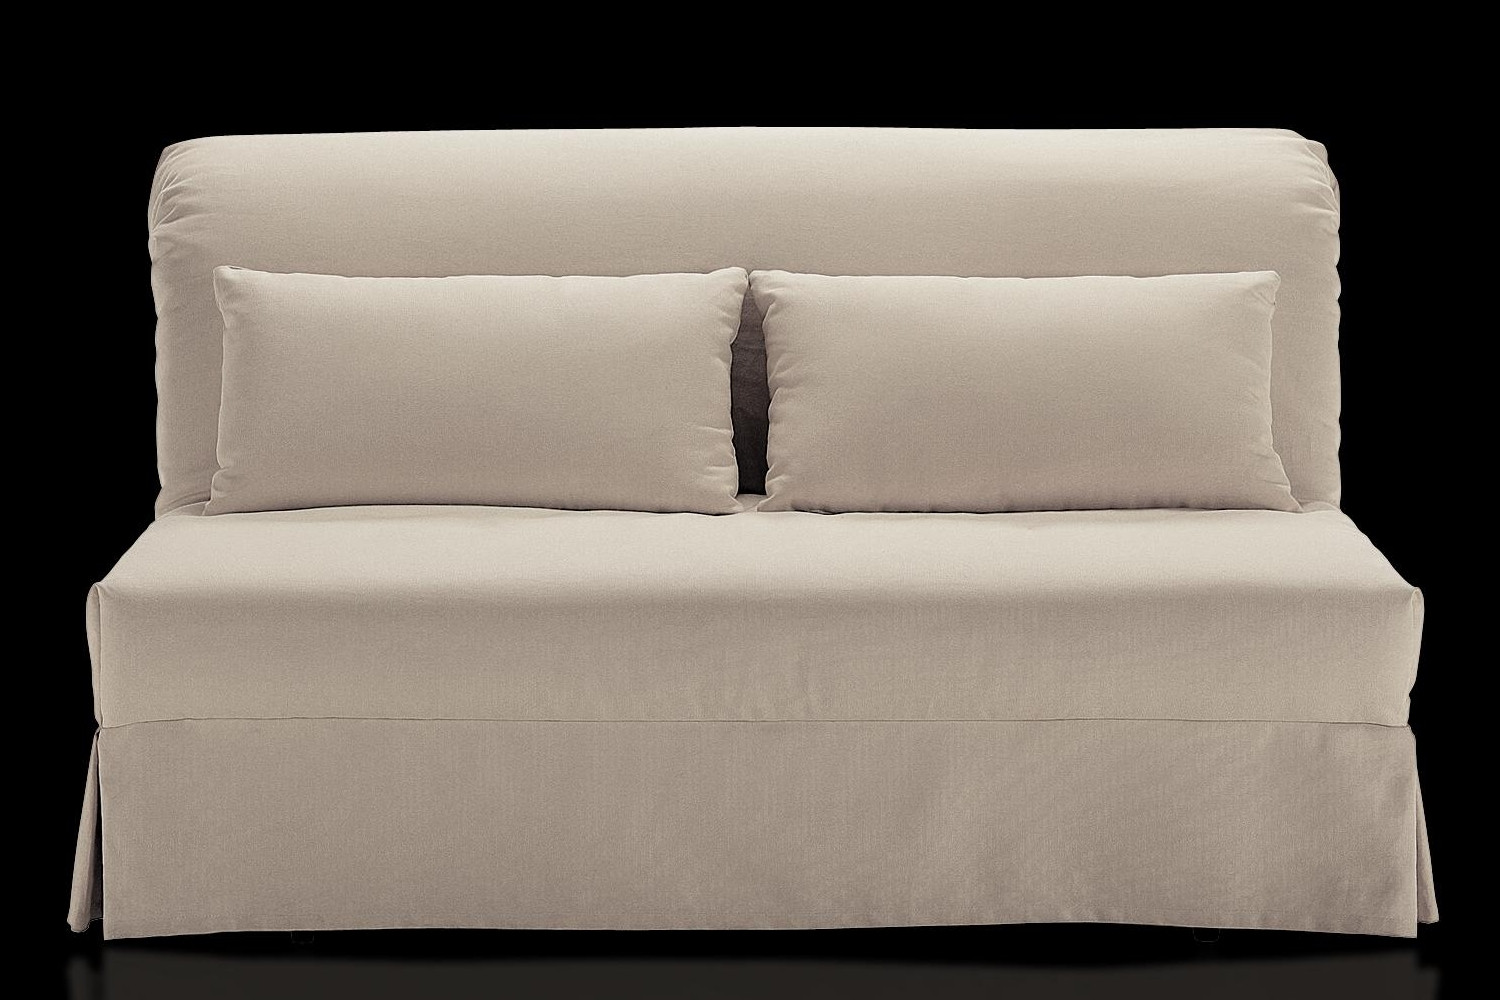 Spencer folding sofa bed with skirted cover for Divani a letto ikea